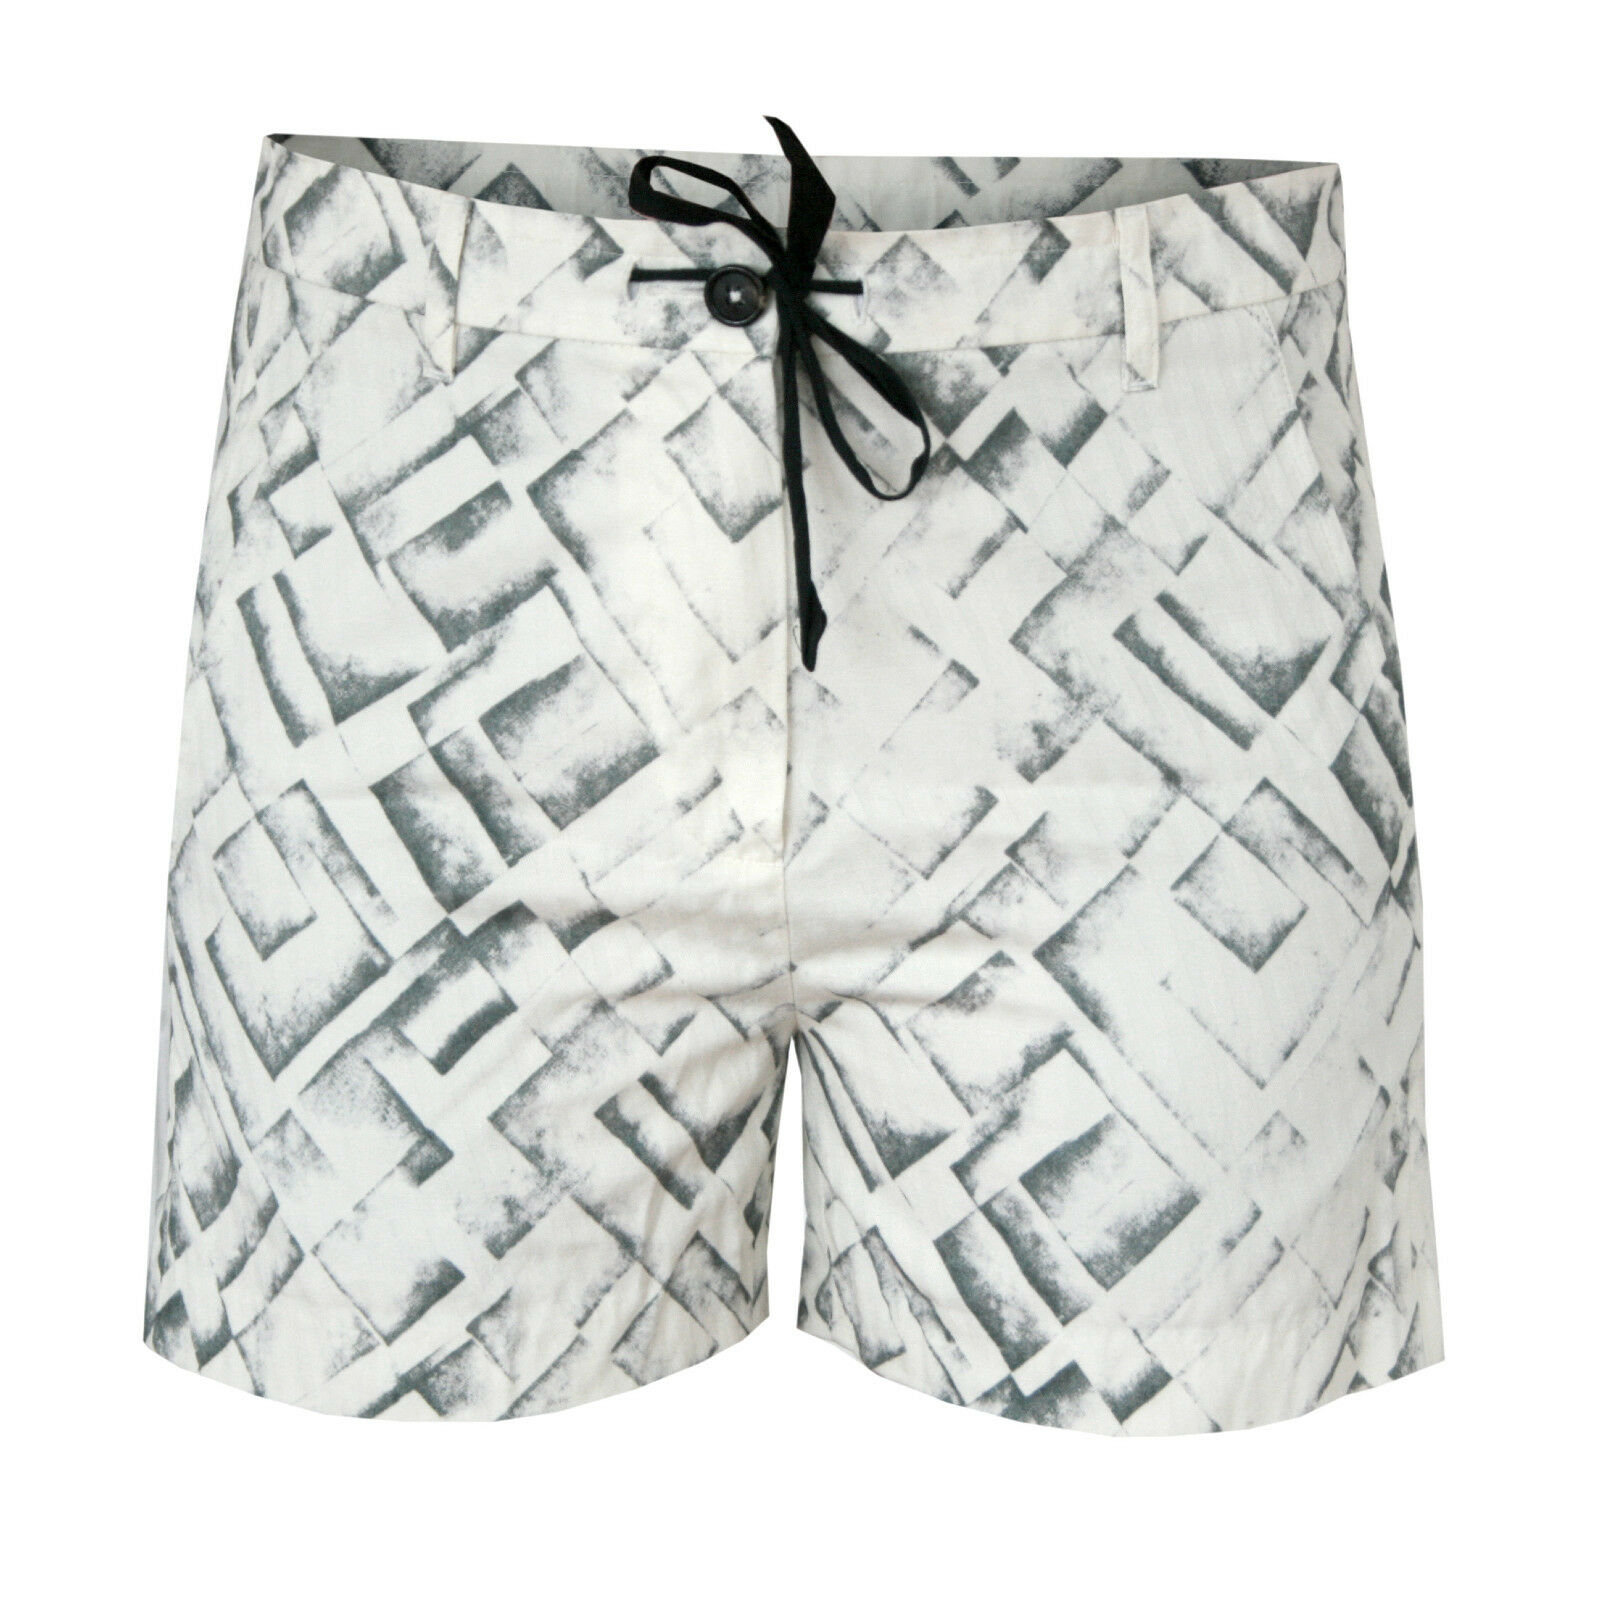 ANN DEMEULEMEESTER  670 ivory printed pattern cotton drawstring shorts 38 6 NEW